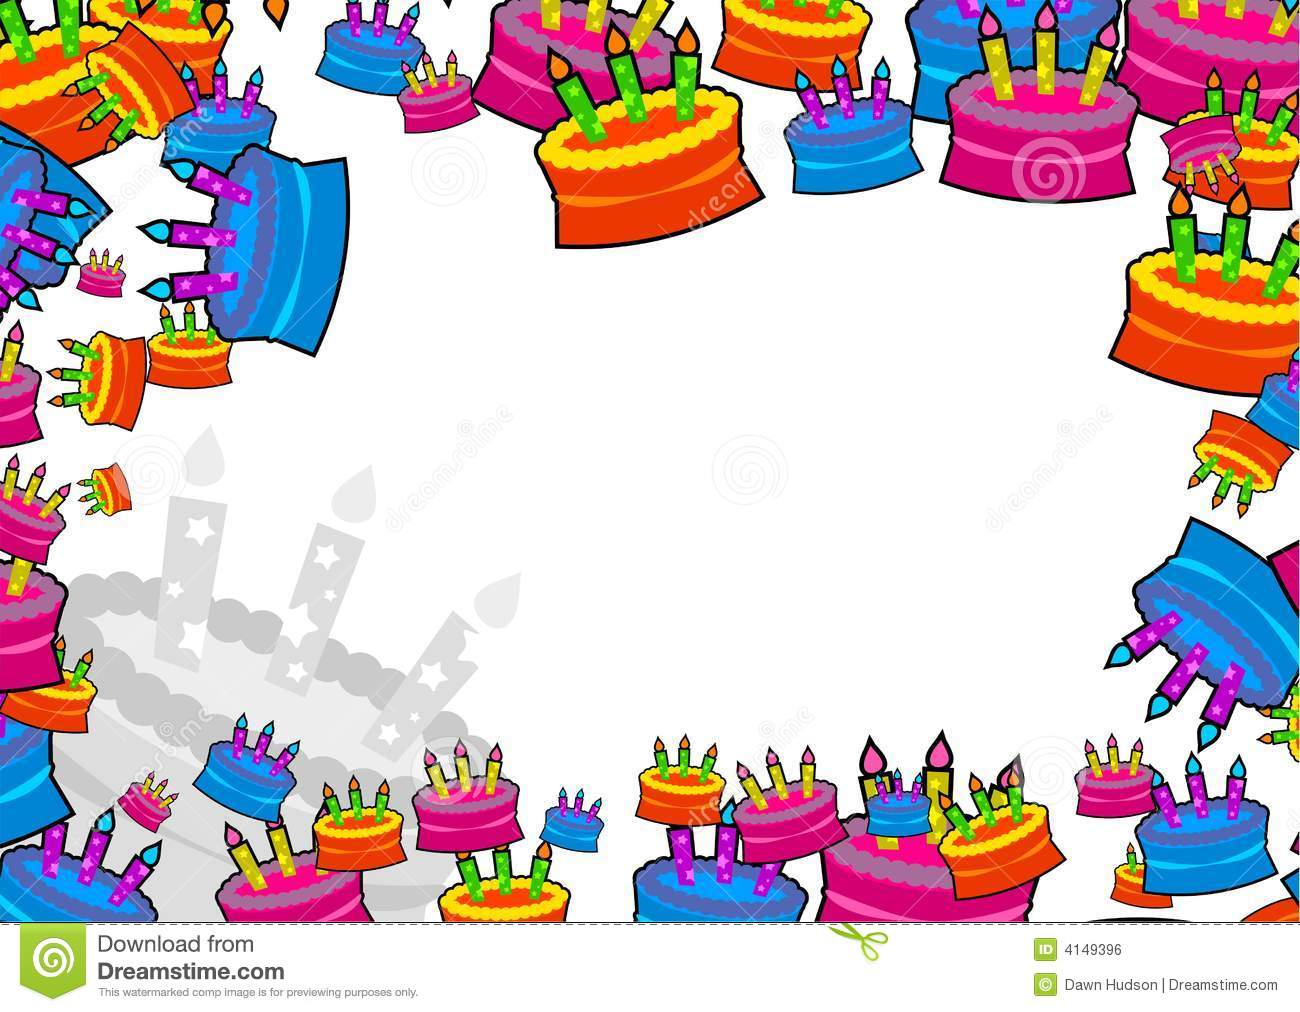 Cake border stock illustration. Illustration of clipart ...